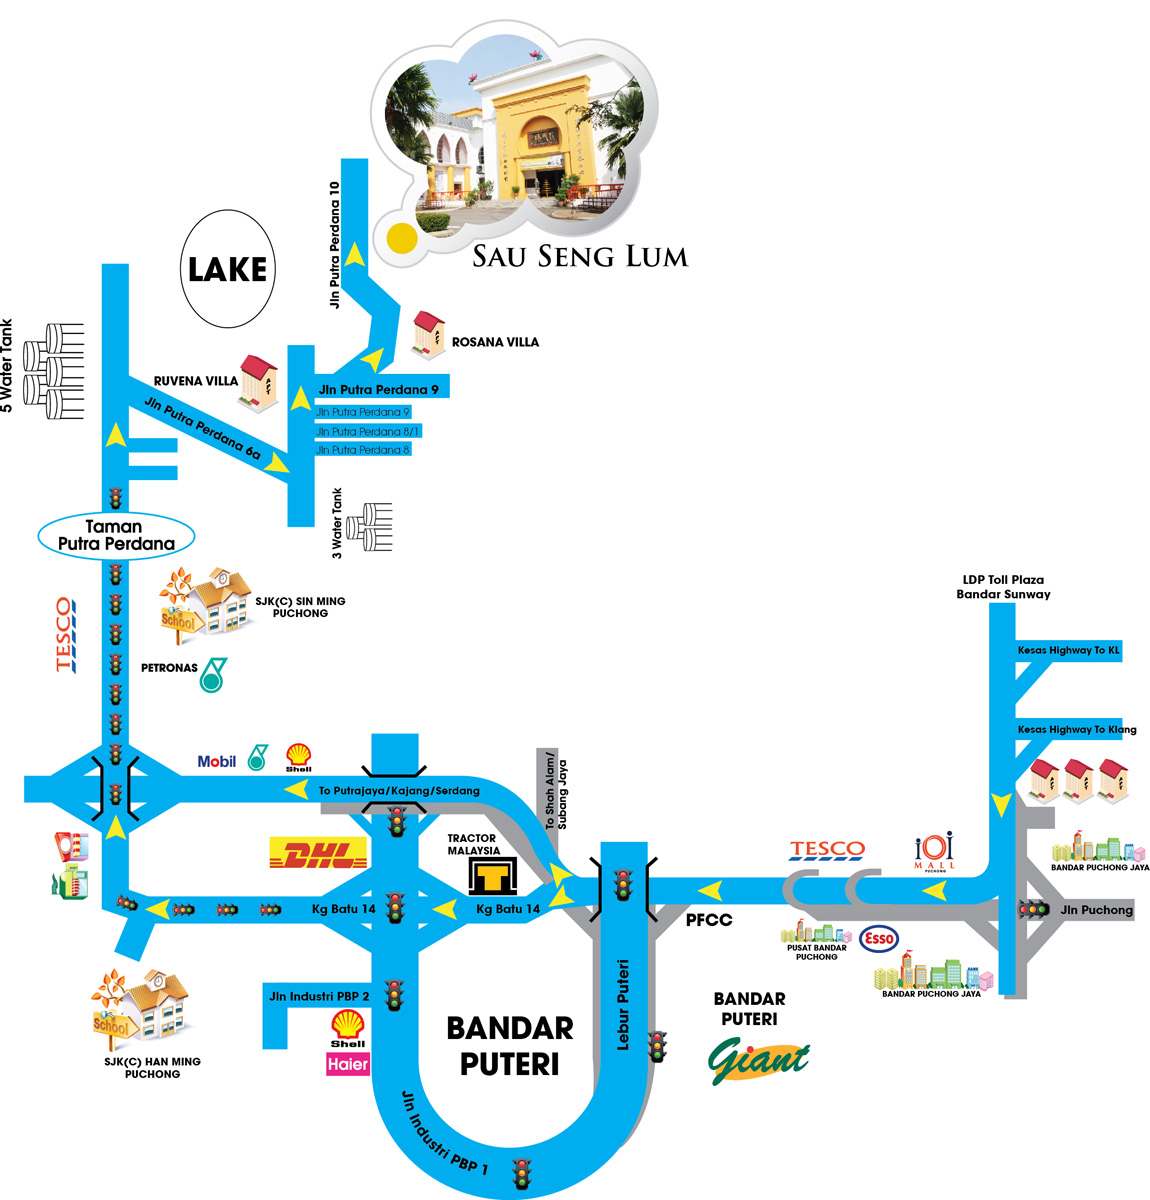 Sau Seng Lum (Puchong) Exhibition Centre 修成林(蒲种)展览中心 location map